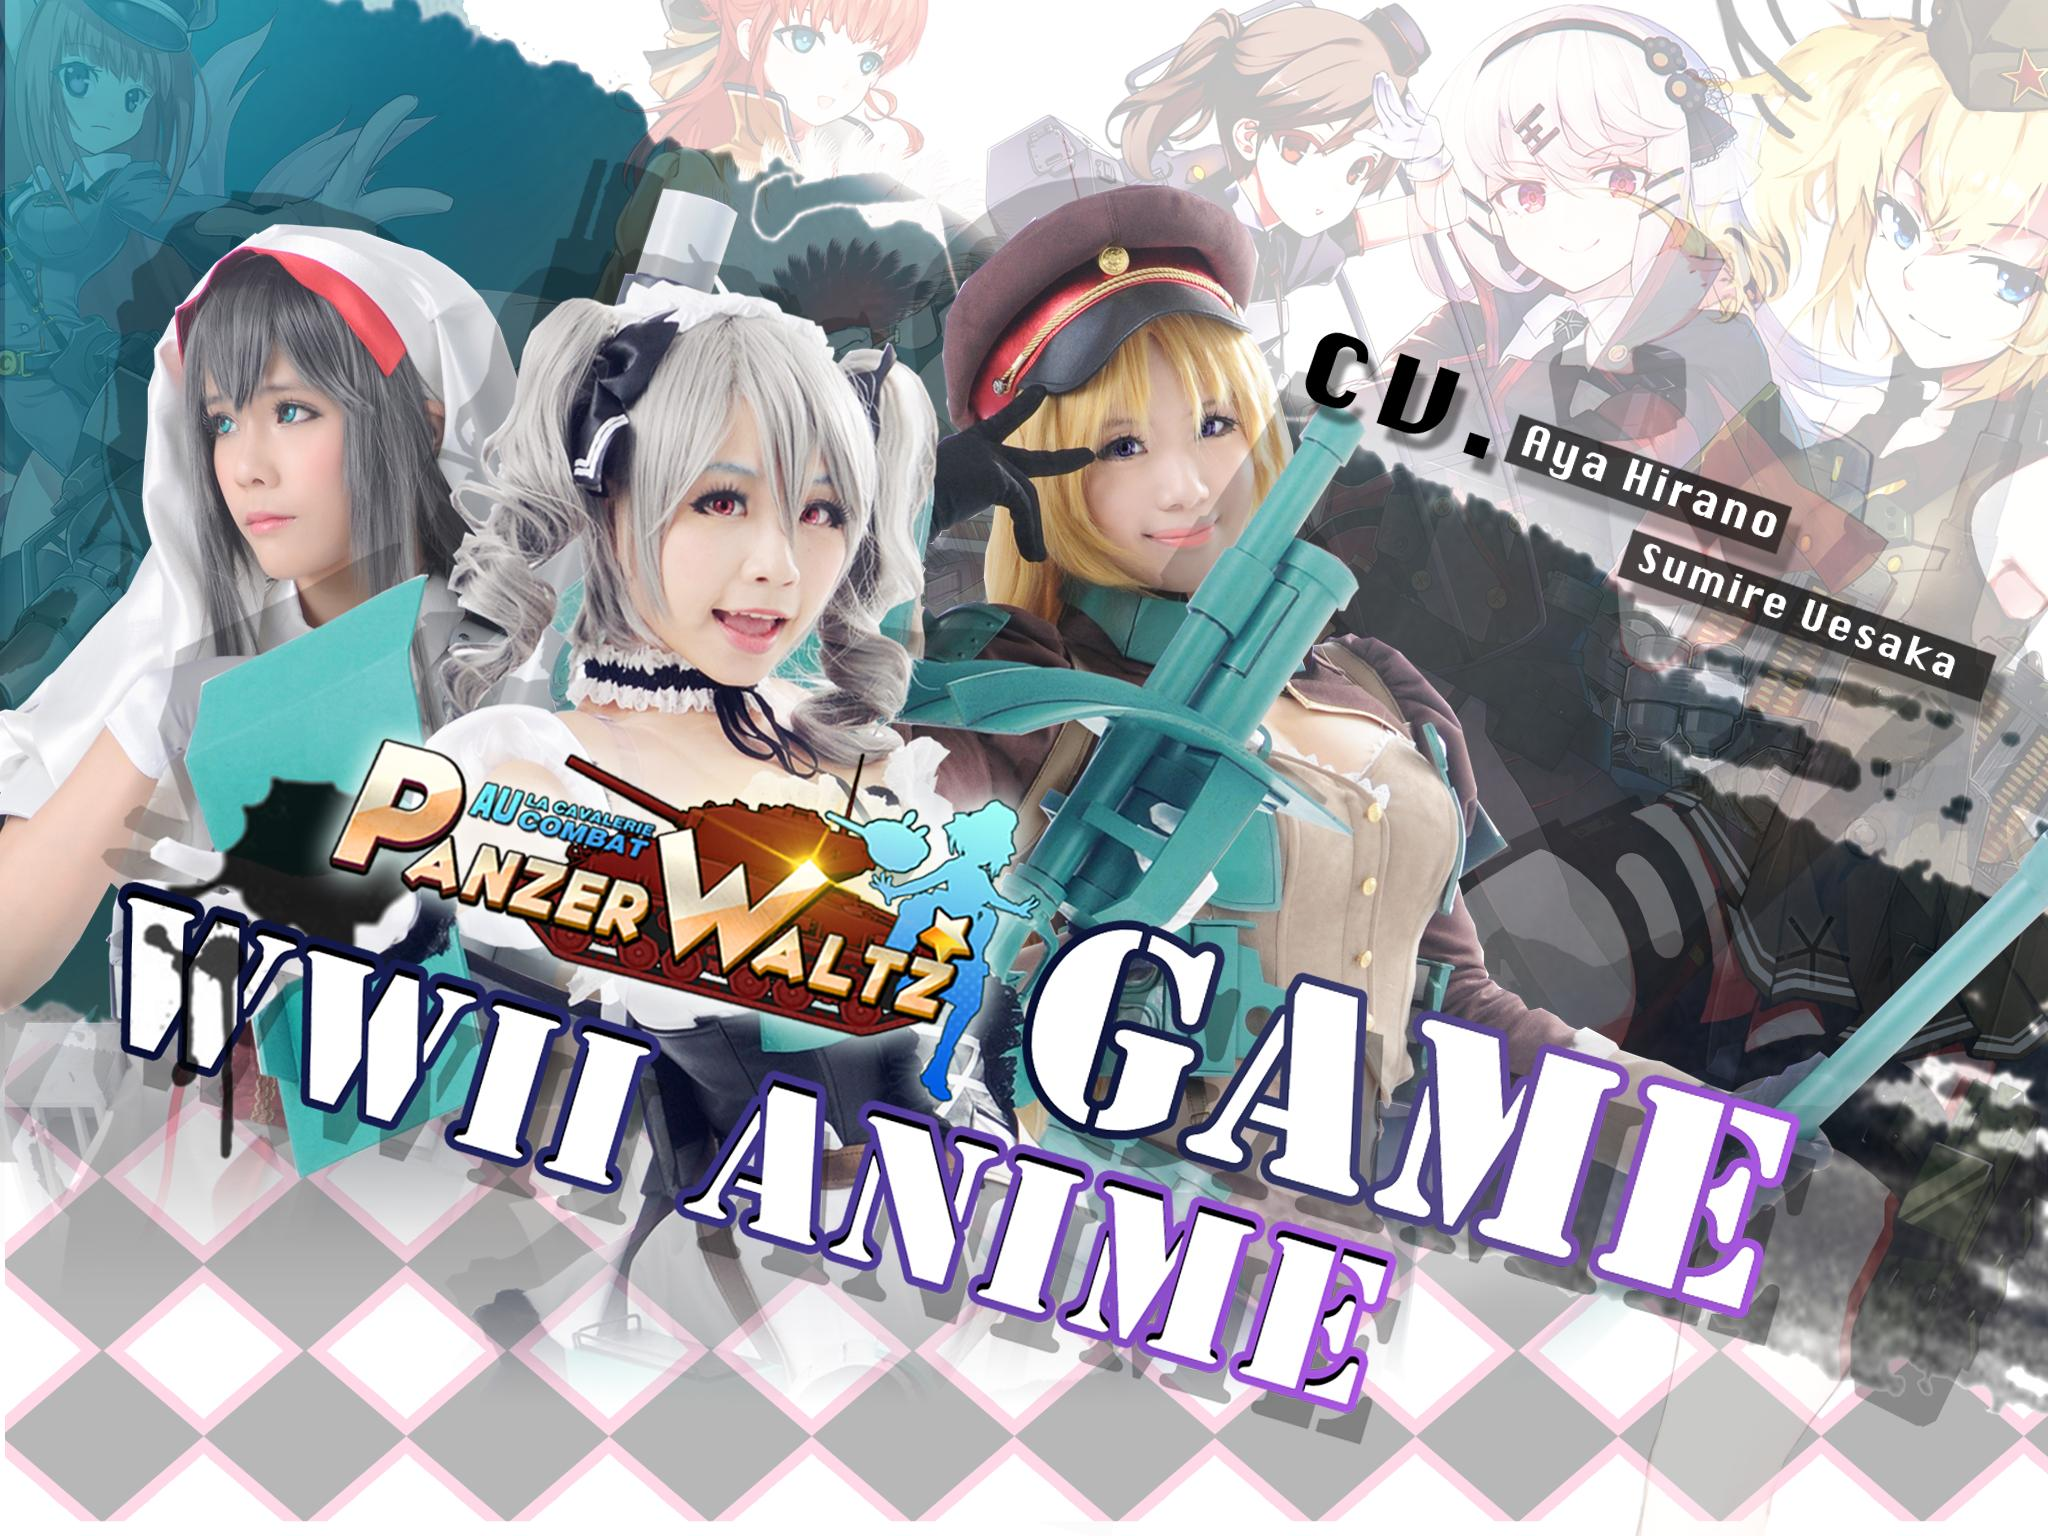 Panzer Waltz Best Anime Game For Android Apk Download